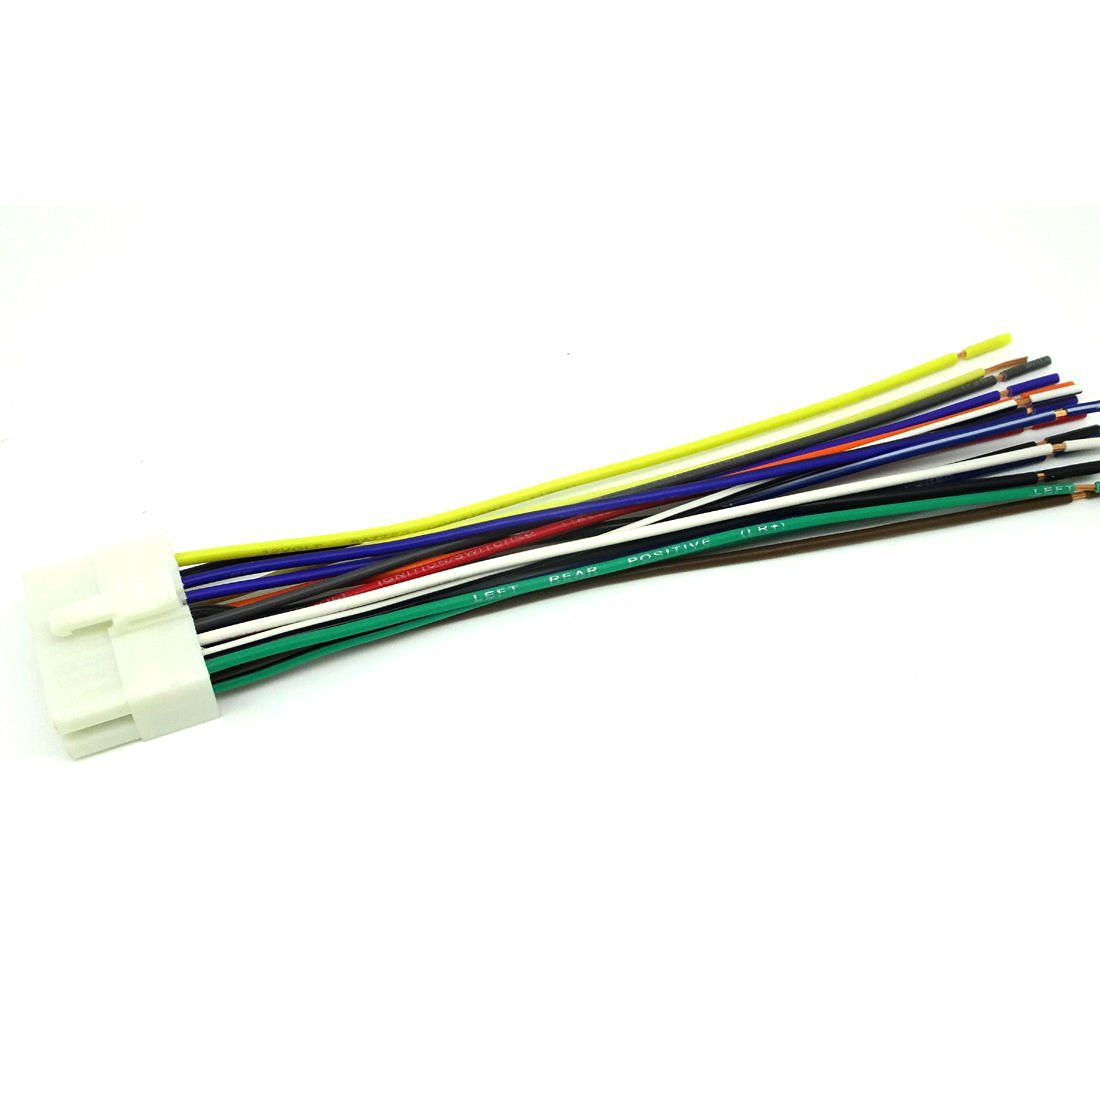 hight resolution of buy clarion 16 pin car stereo radio wiring wire harness skcl16 21 in clarion wiring harness car stereo 16 pin wire connector mobilistics